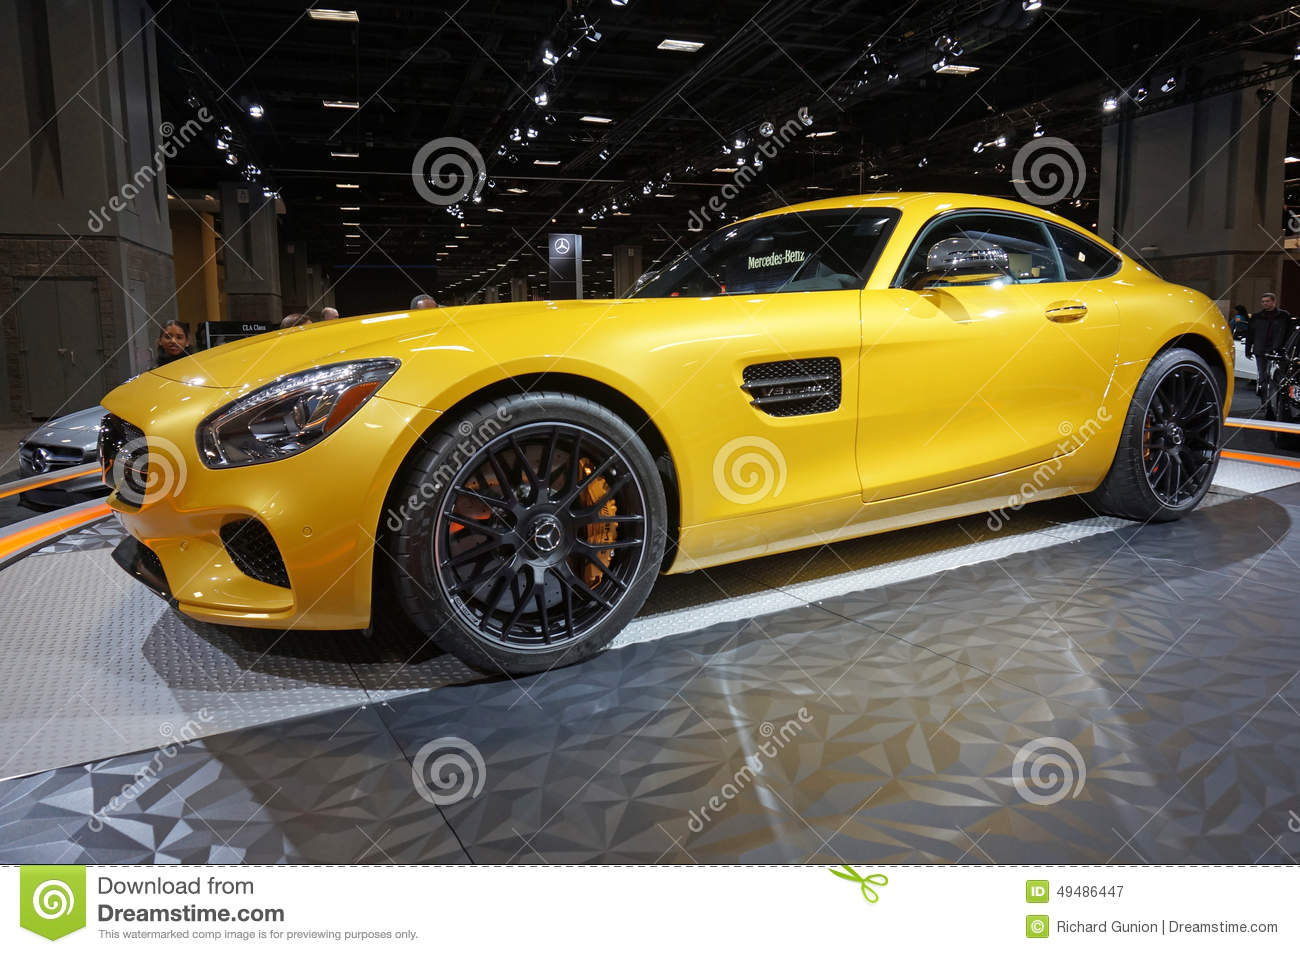 Mercedes benz sports car editorial photography for Mercedes benz sports cars